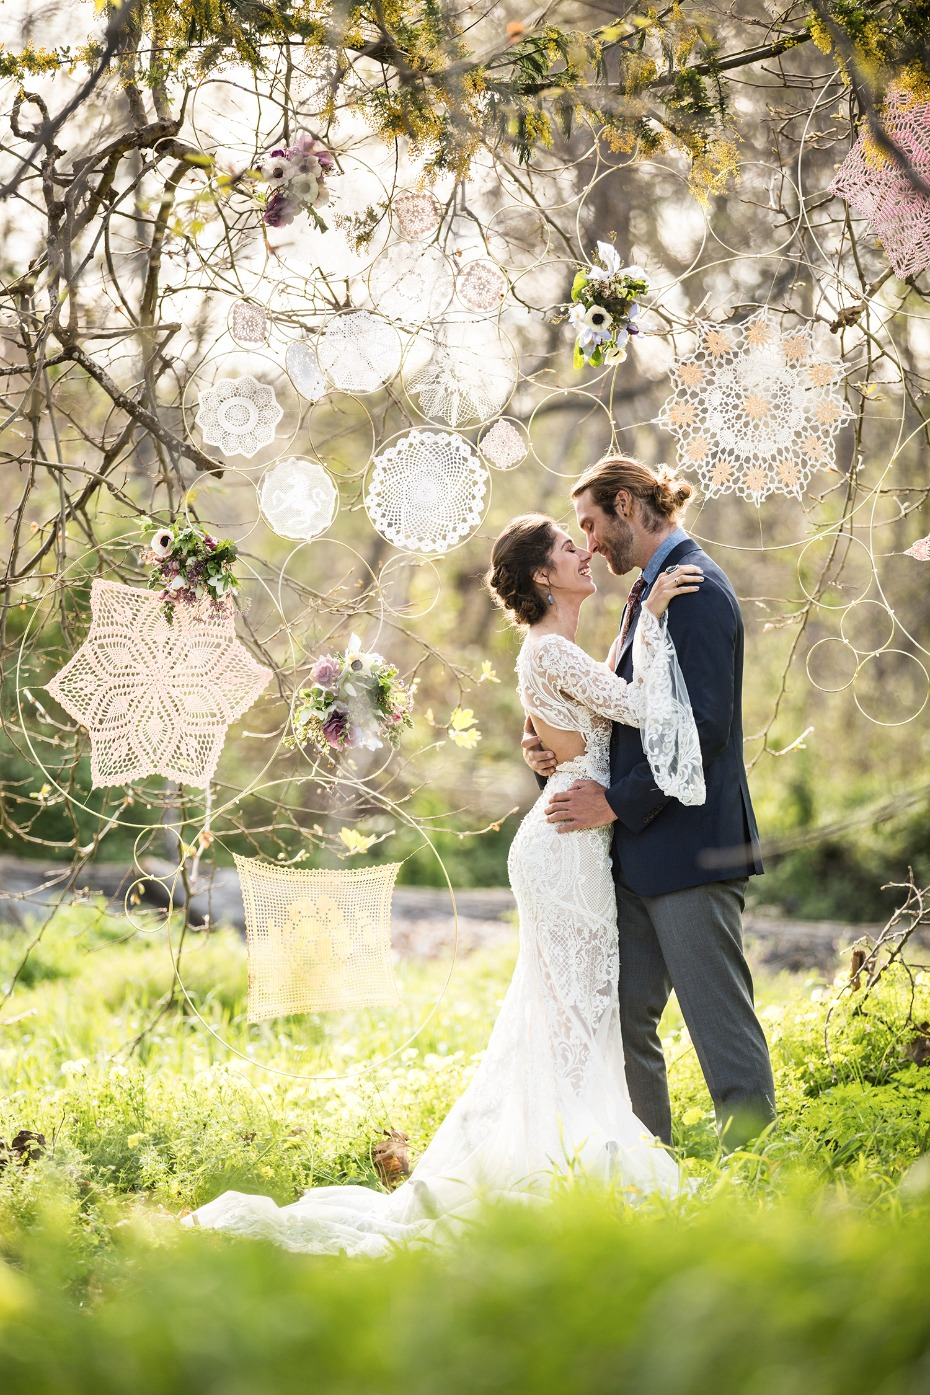 Lace flower backdrop